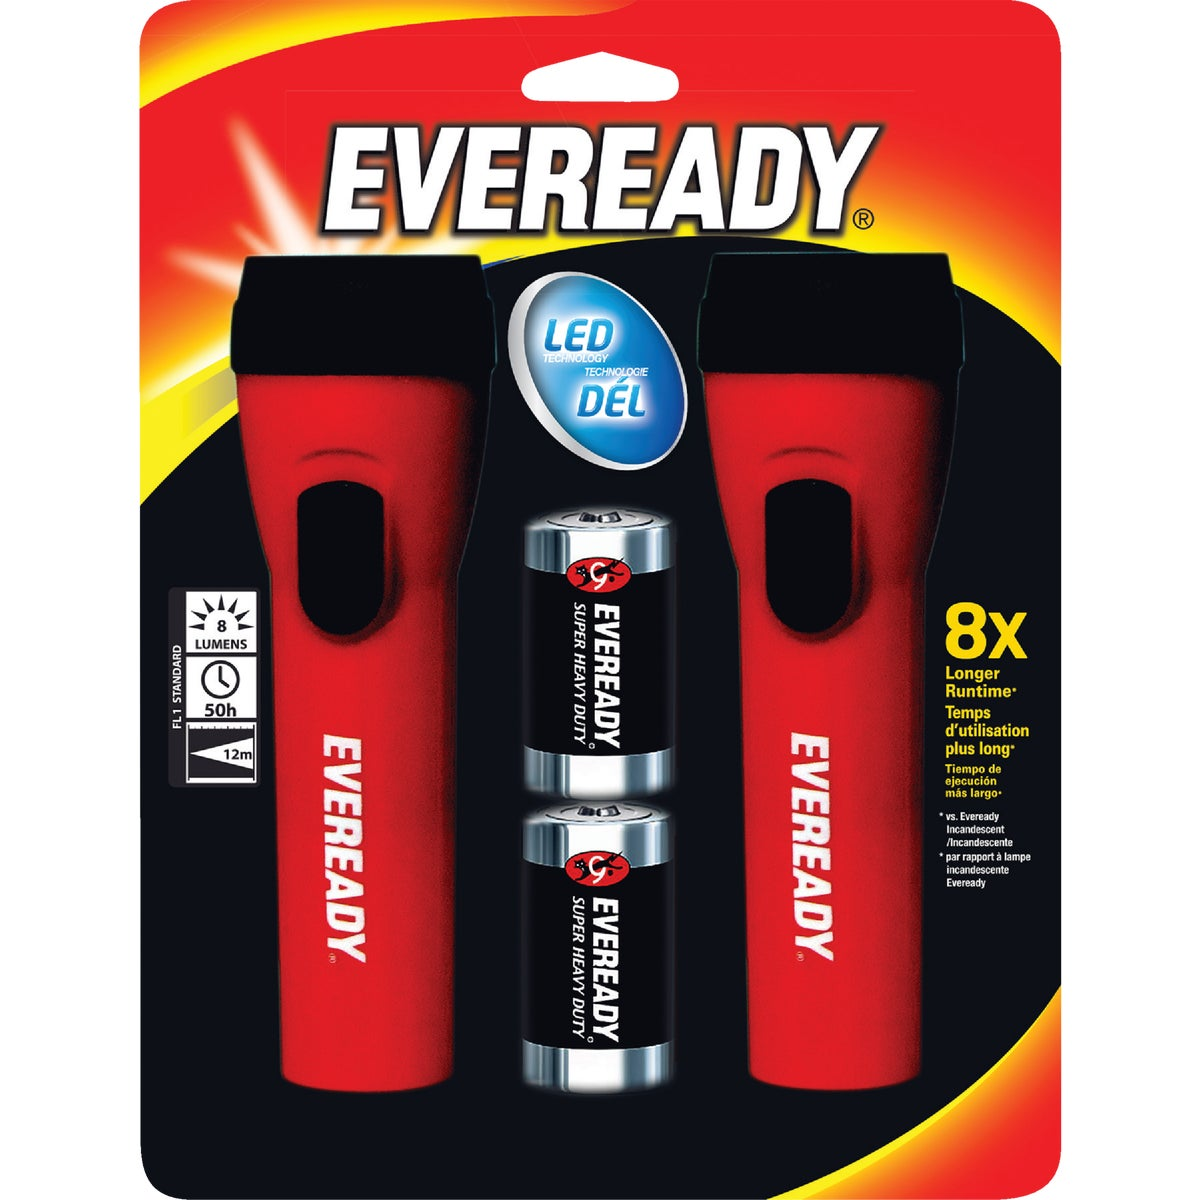 LED W/BATTERY FLASHLIGHT - EVEL152S by Energizer